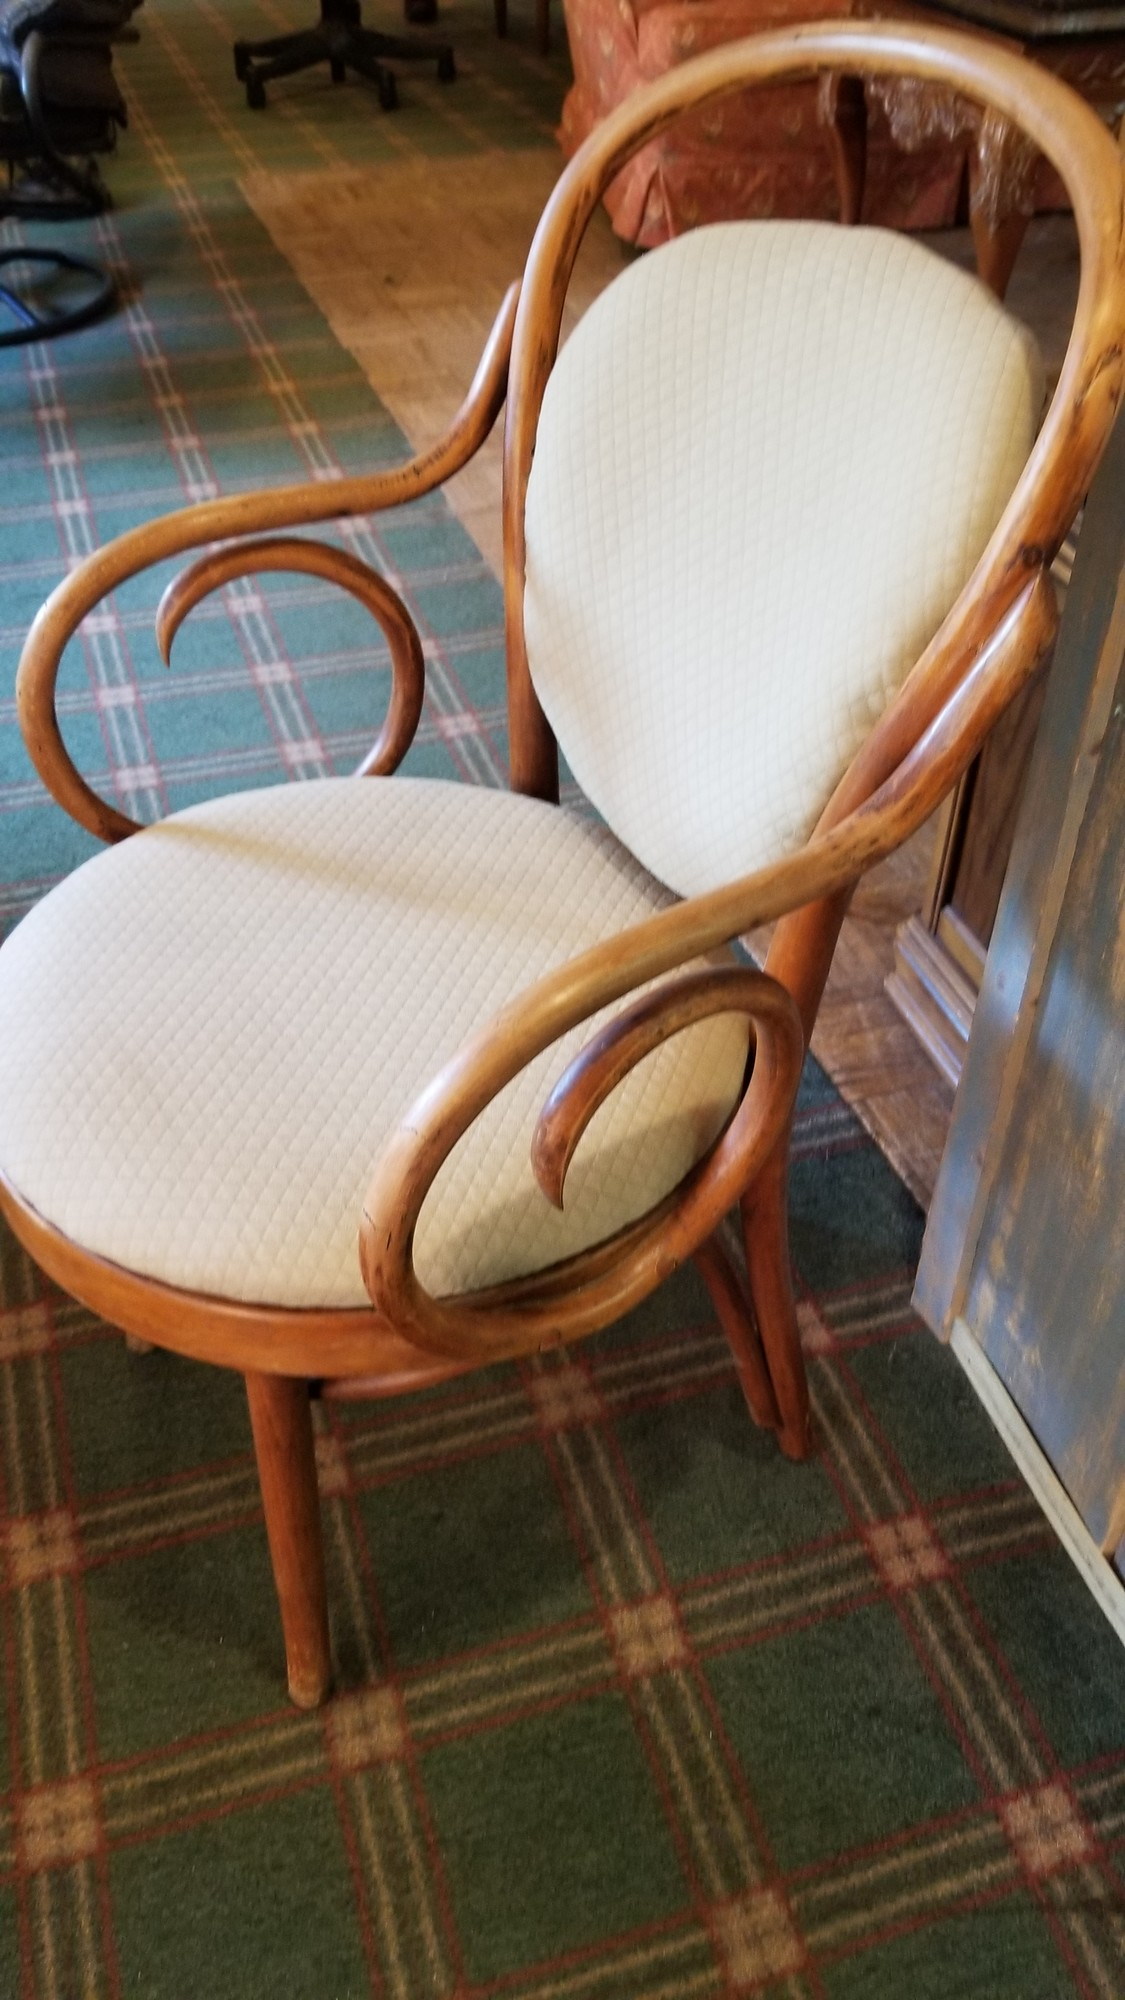 Bent Wood Chair, Size: 20x16x36